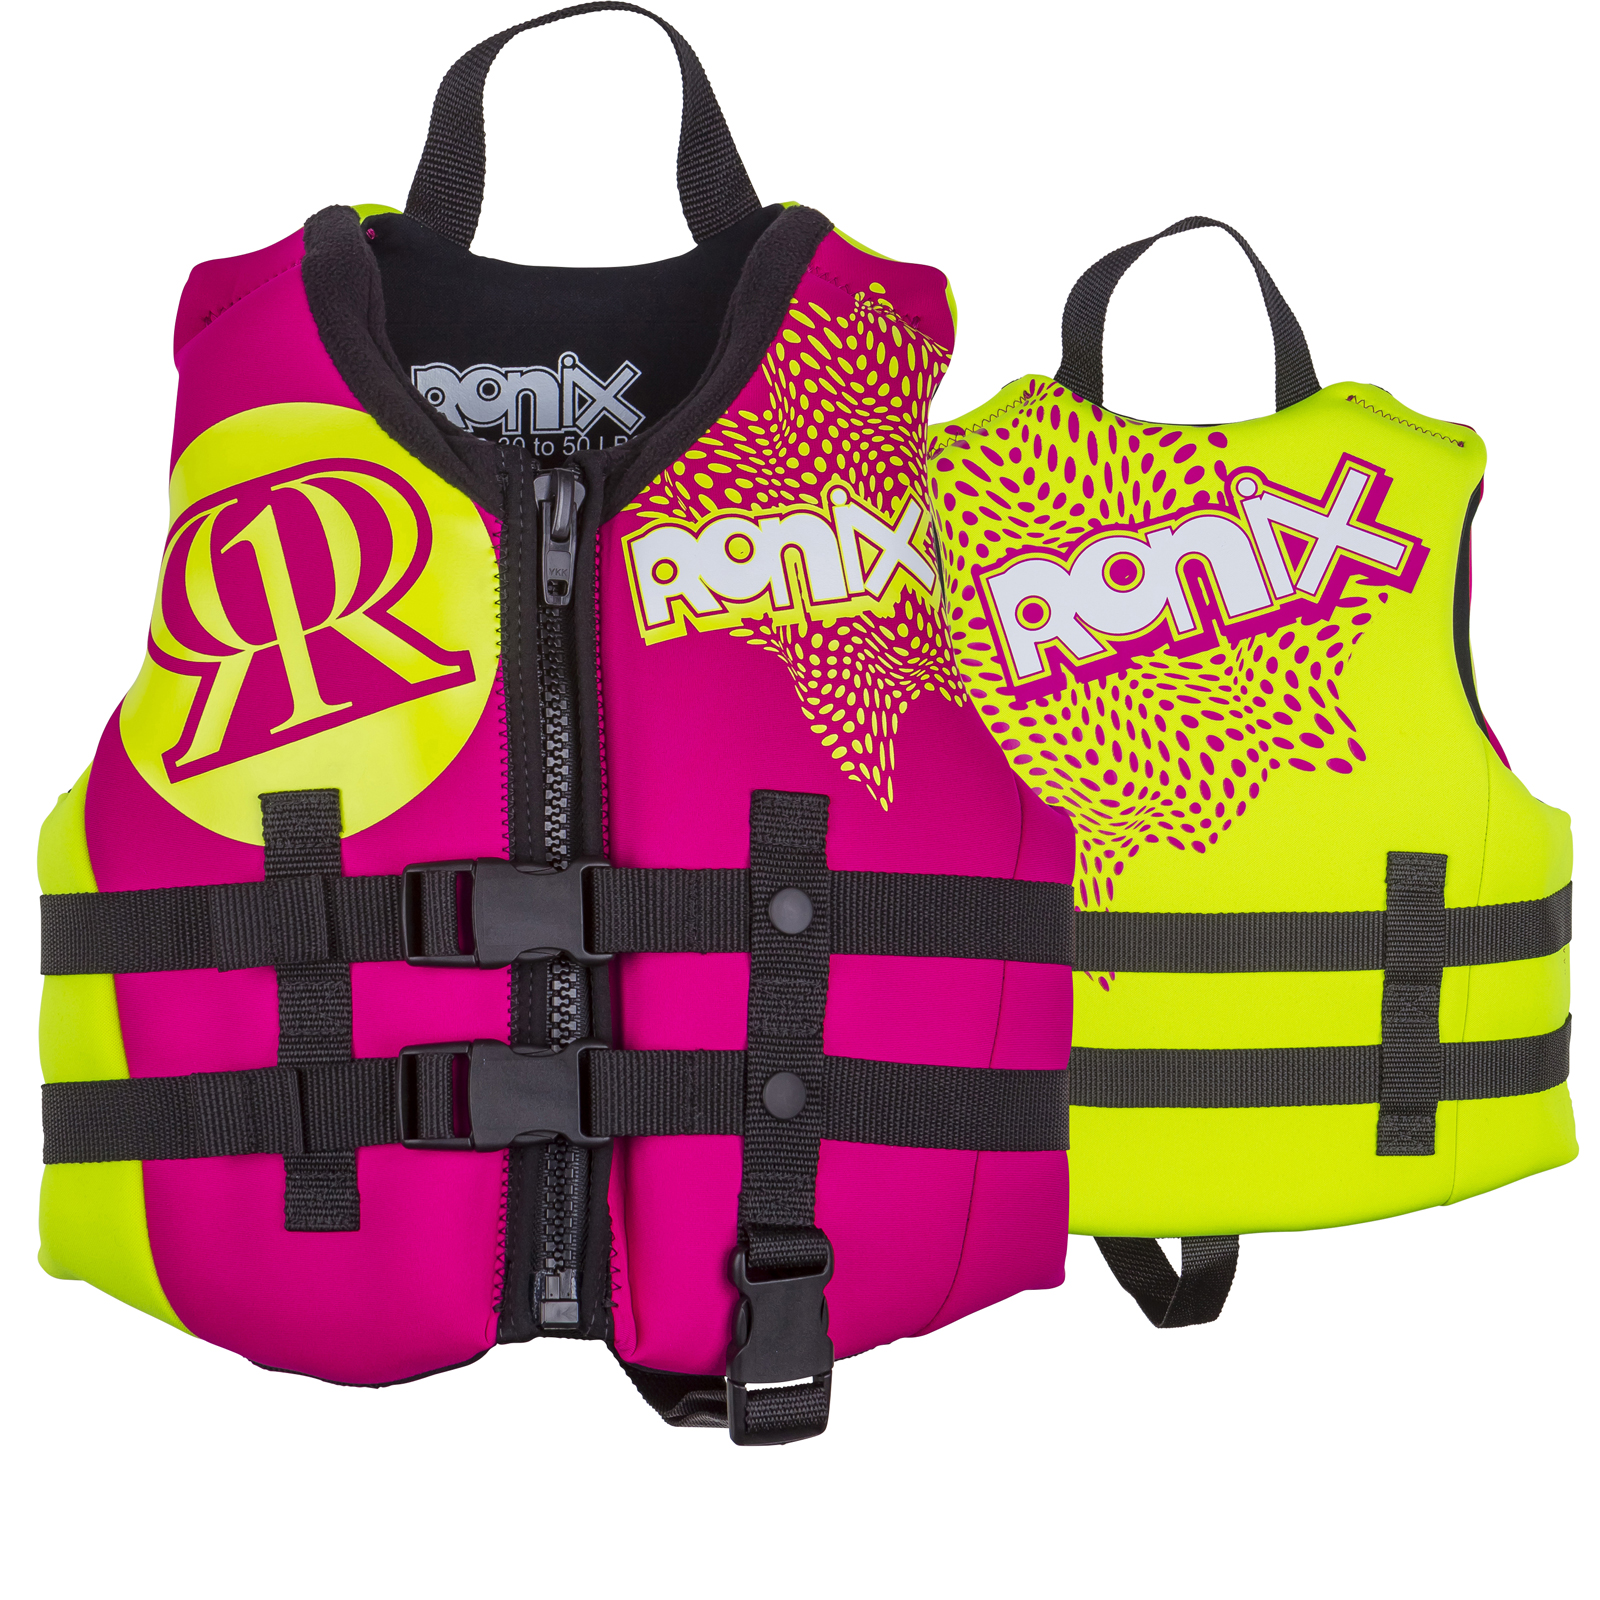 AUGUST GIRL'S LIFE VEST - CHILD 13-23KG RONIX 2018